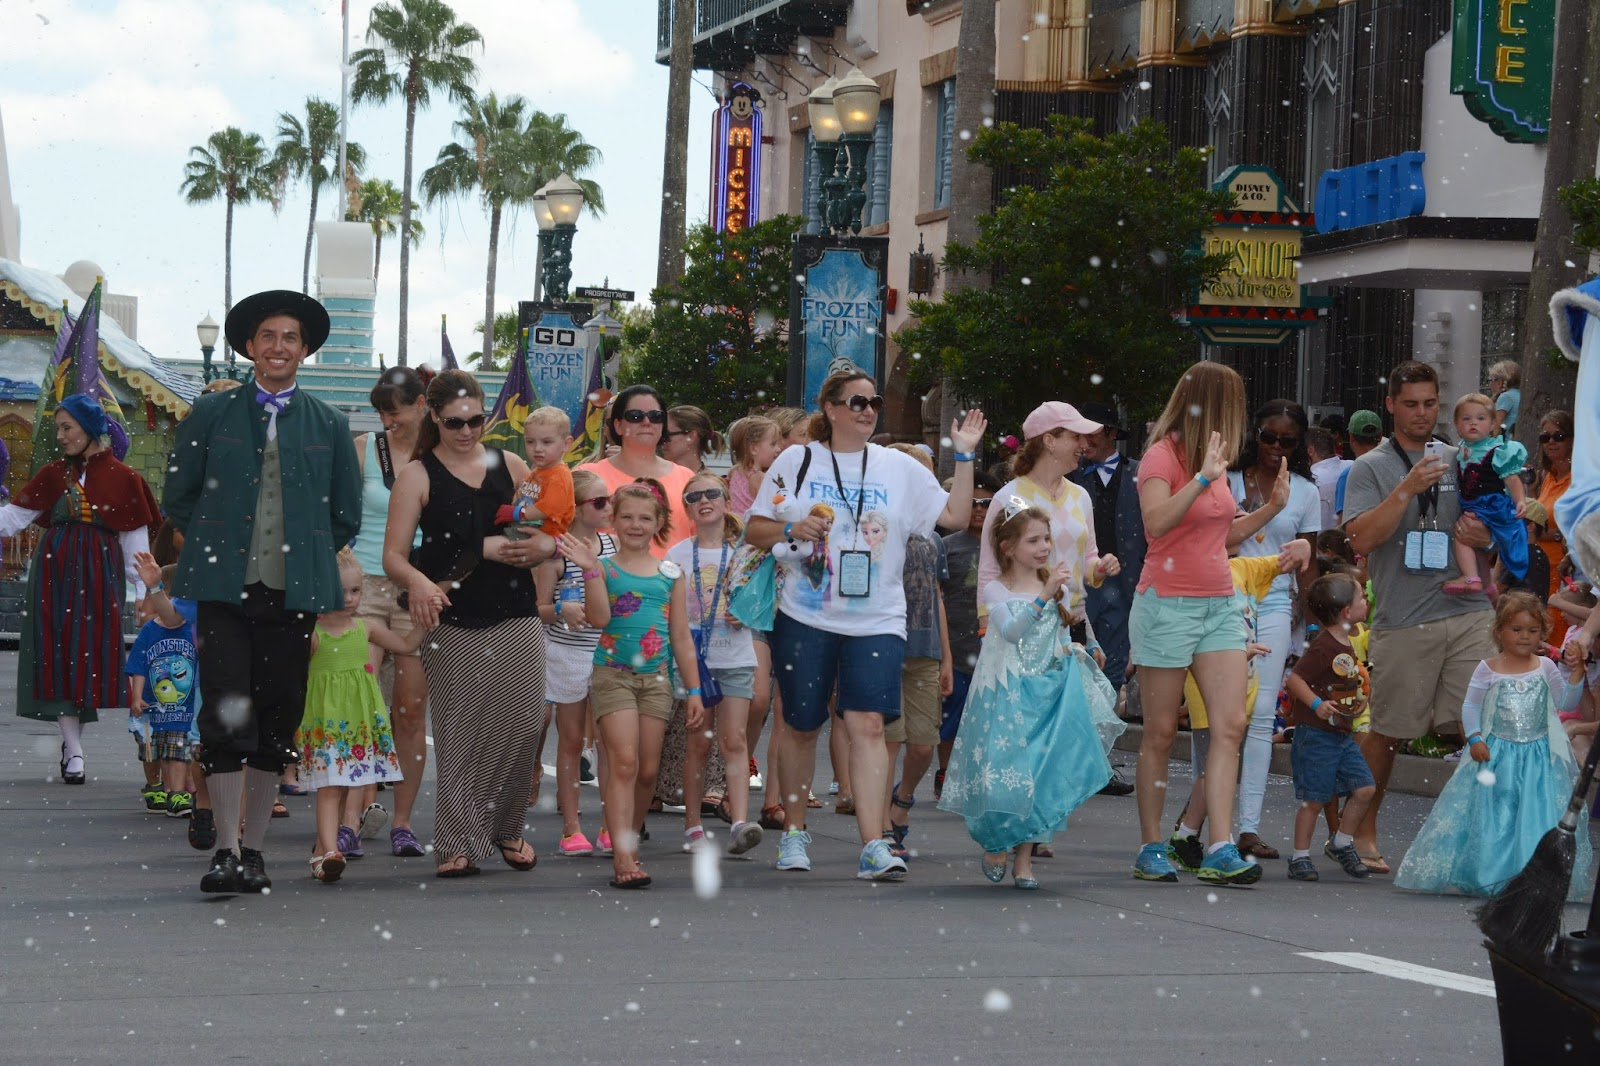 Kids participate in Anna and Elsa's Royal Welcome Procession